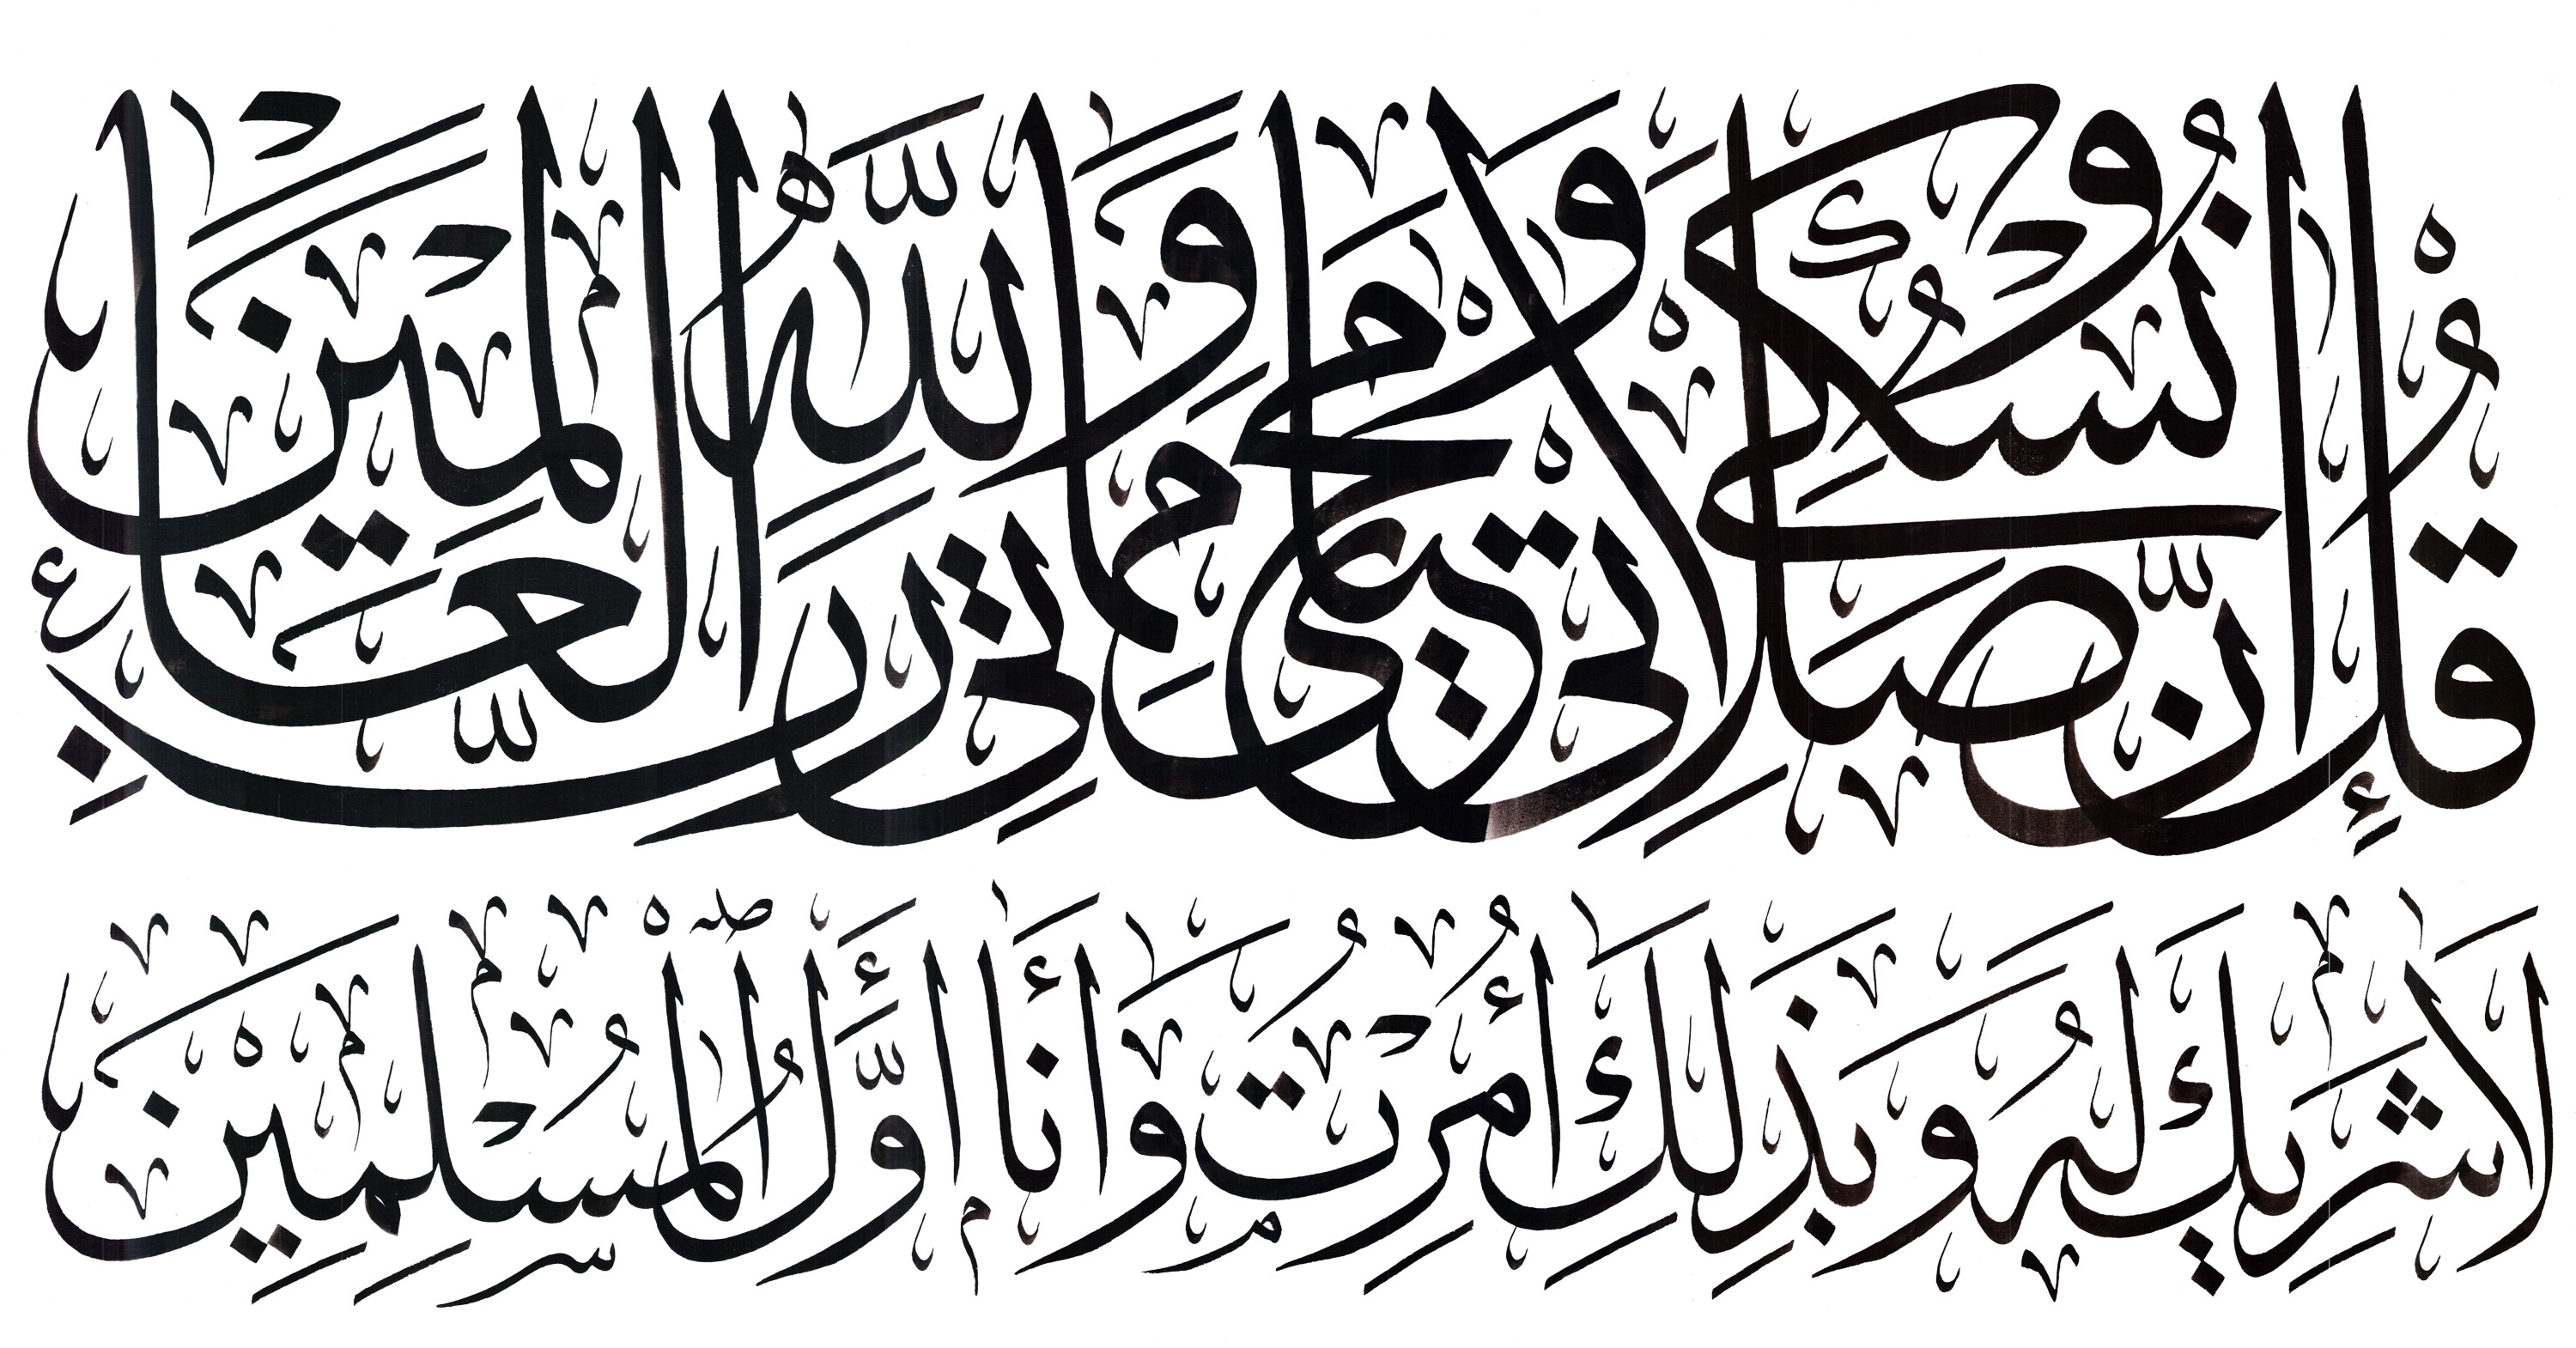 Image result for surah al an am calligraphy